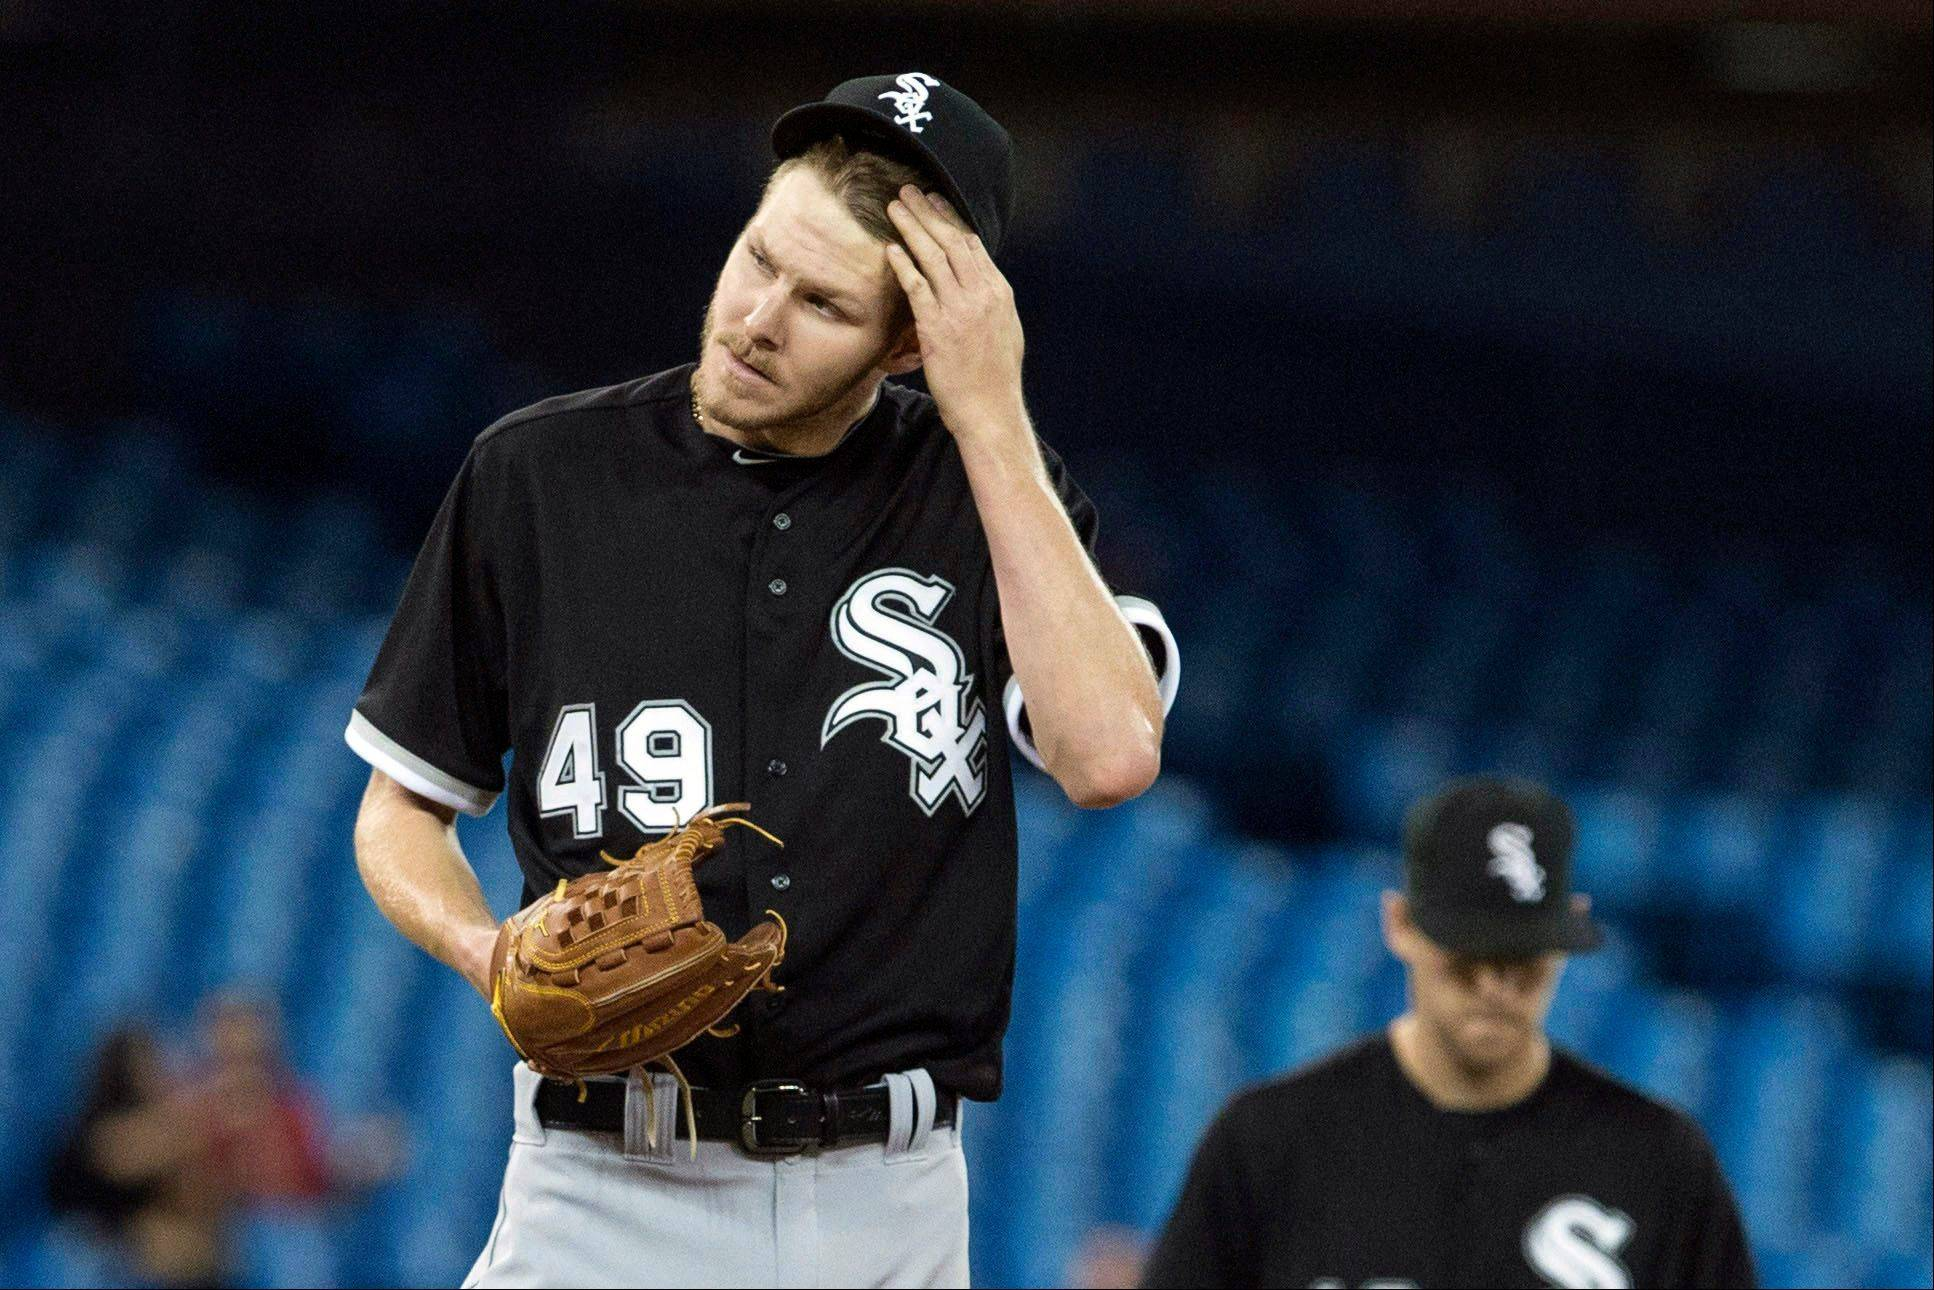 Chicago White Sox pitcher Chris Sale reacts during the fifth inning of a baseball game against the Toronto Blue Jays, Thursday, April 18, 2013, in Toronto.